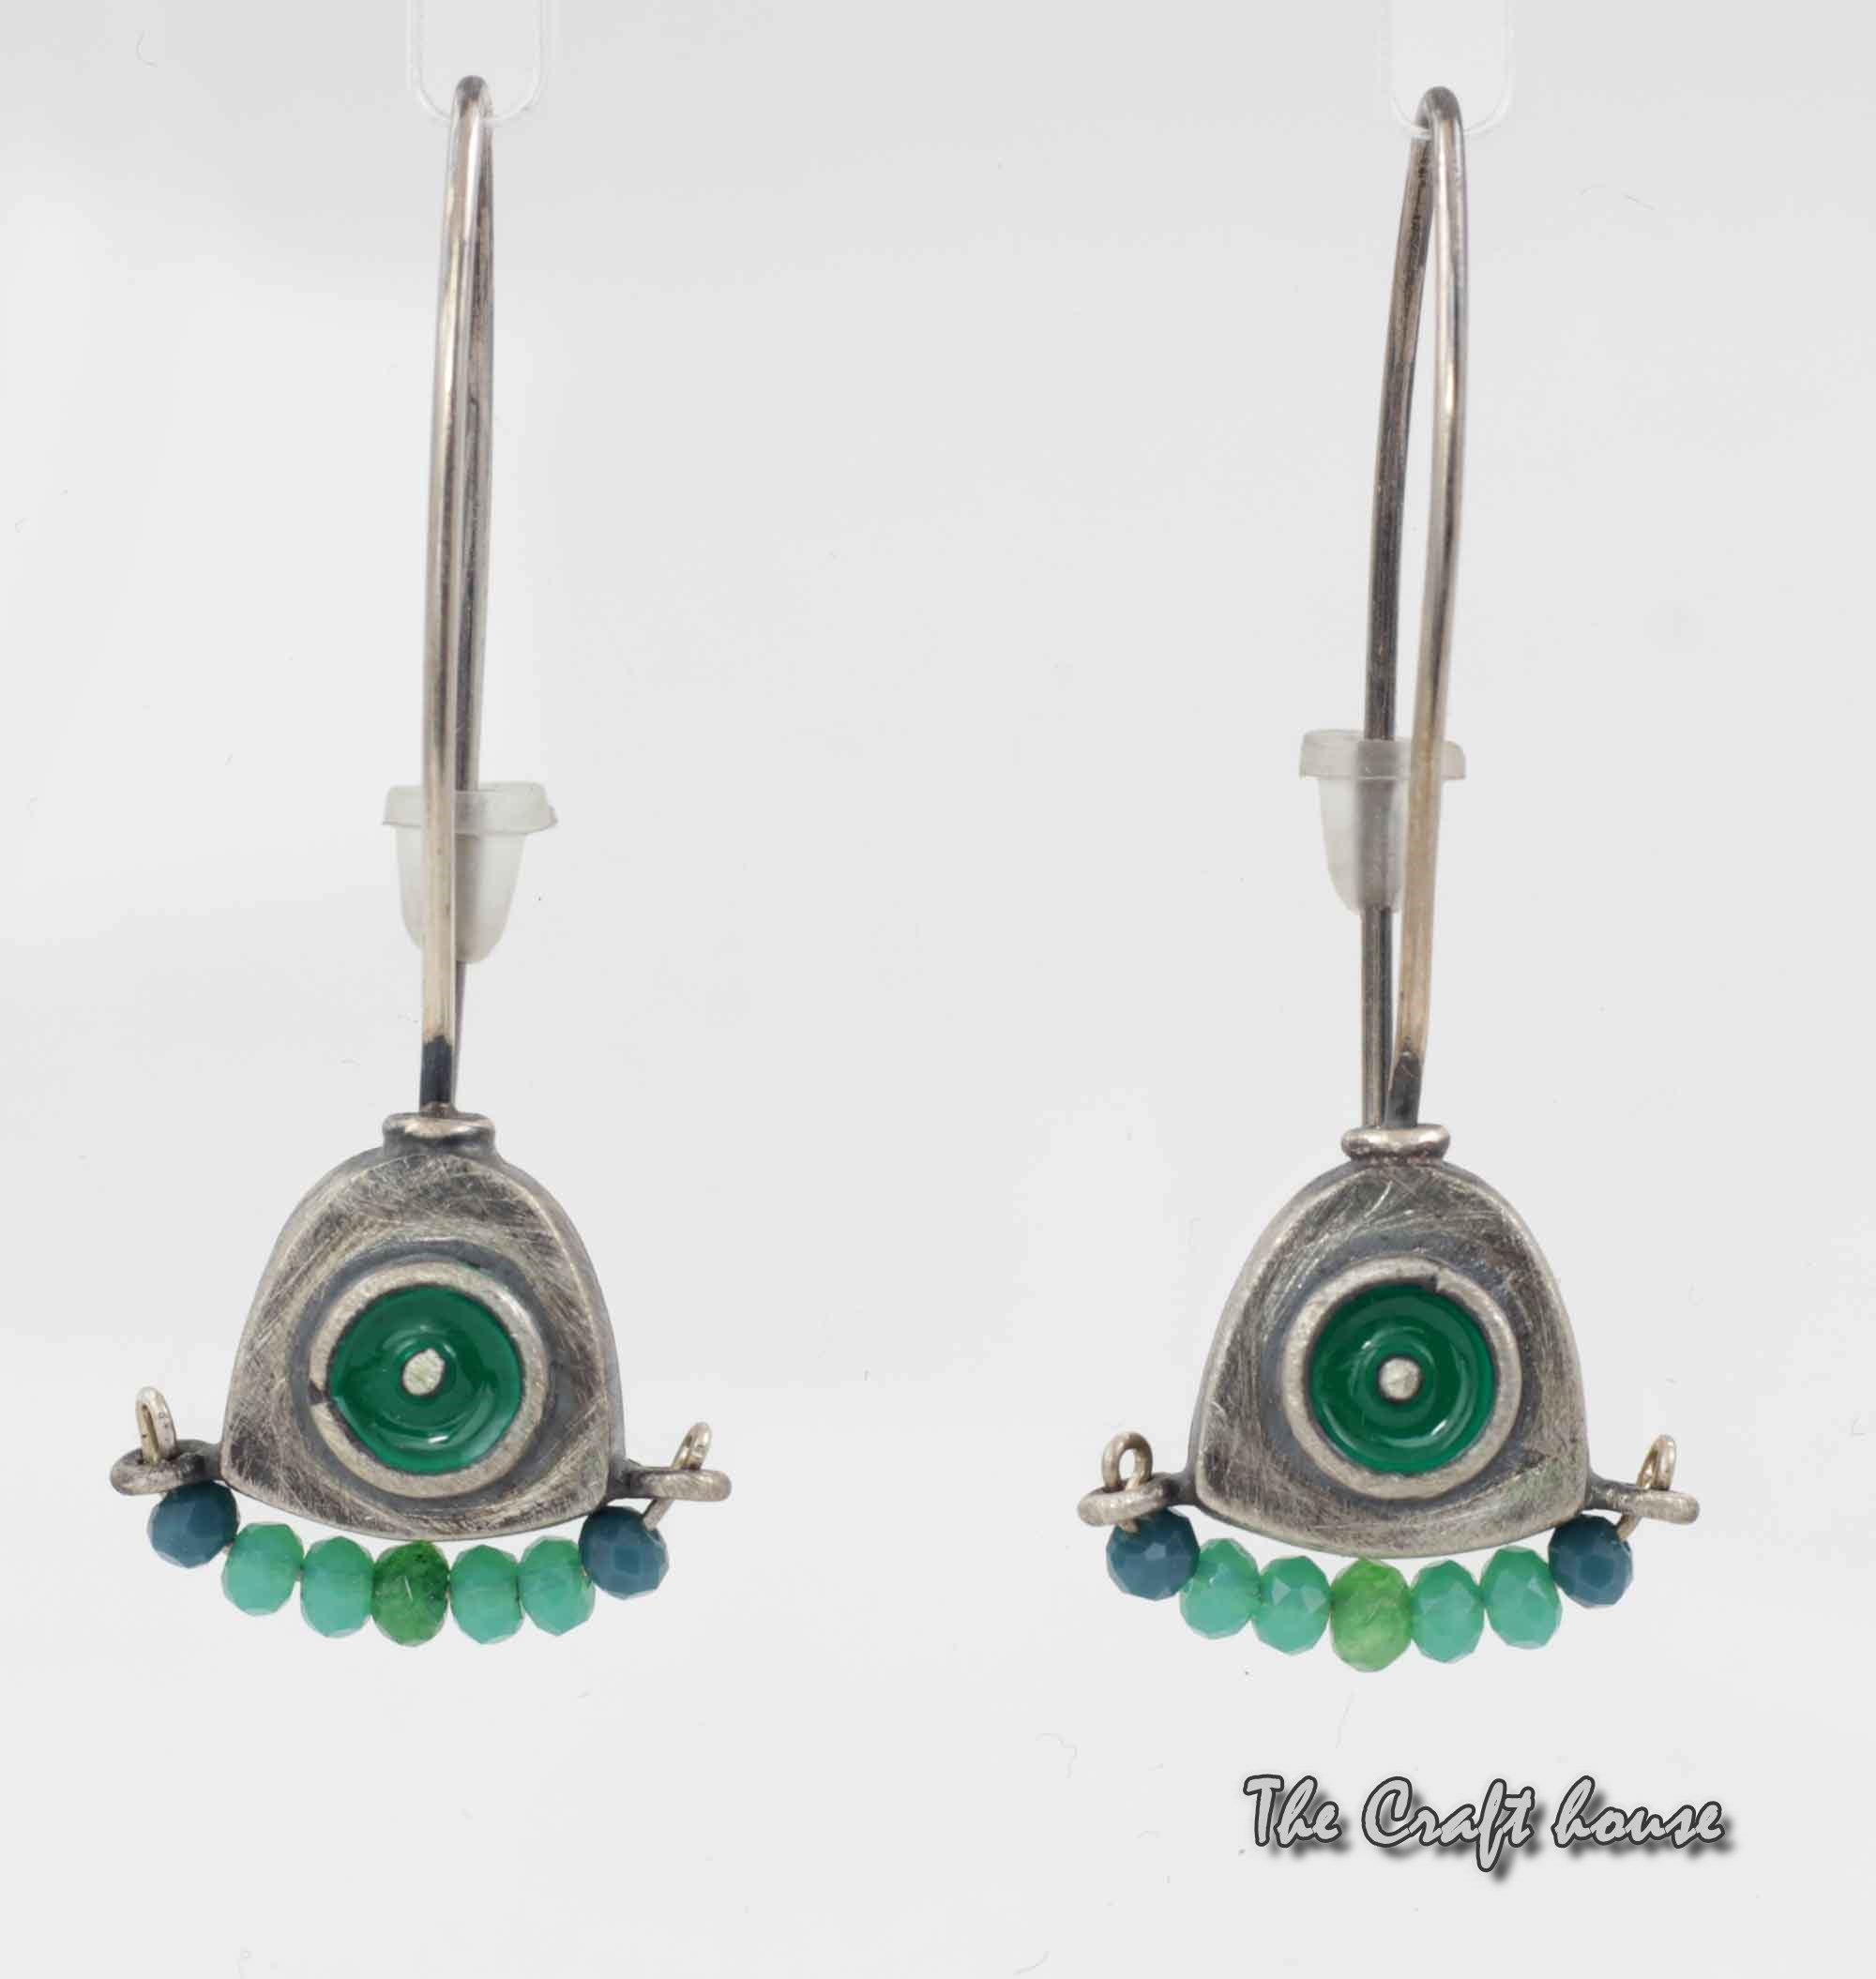 Silver earrings with beads and enamel